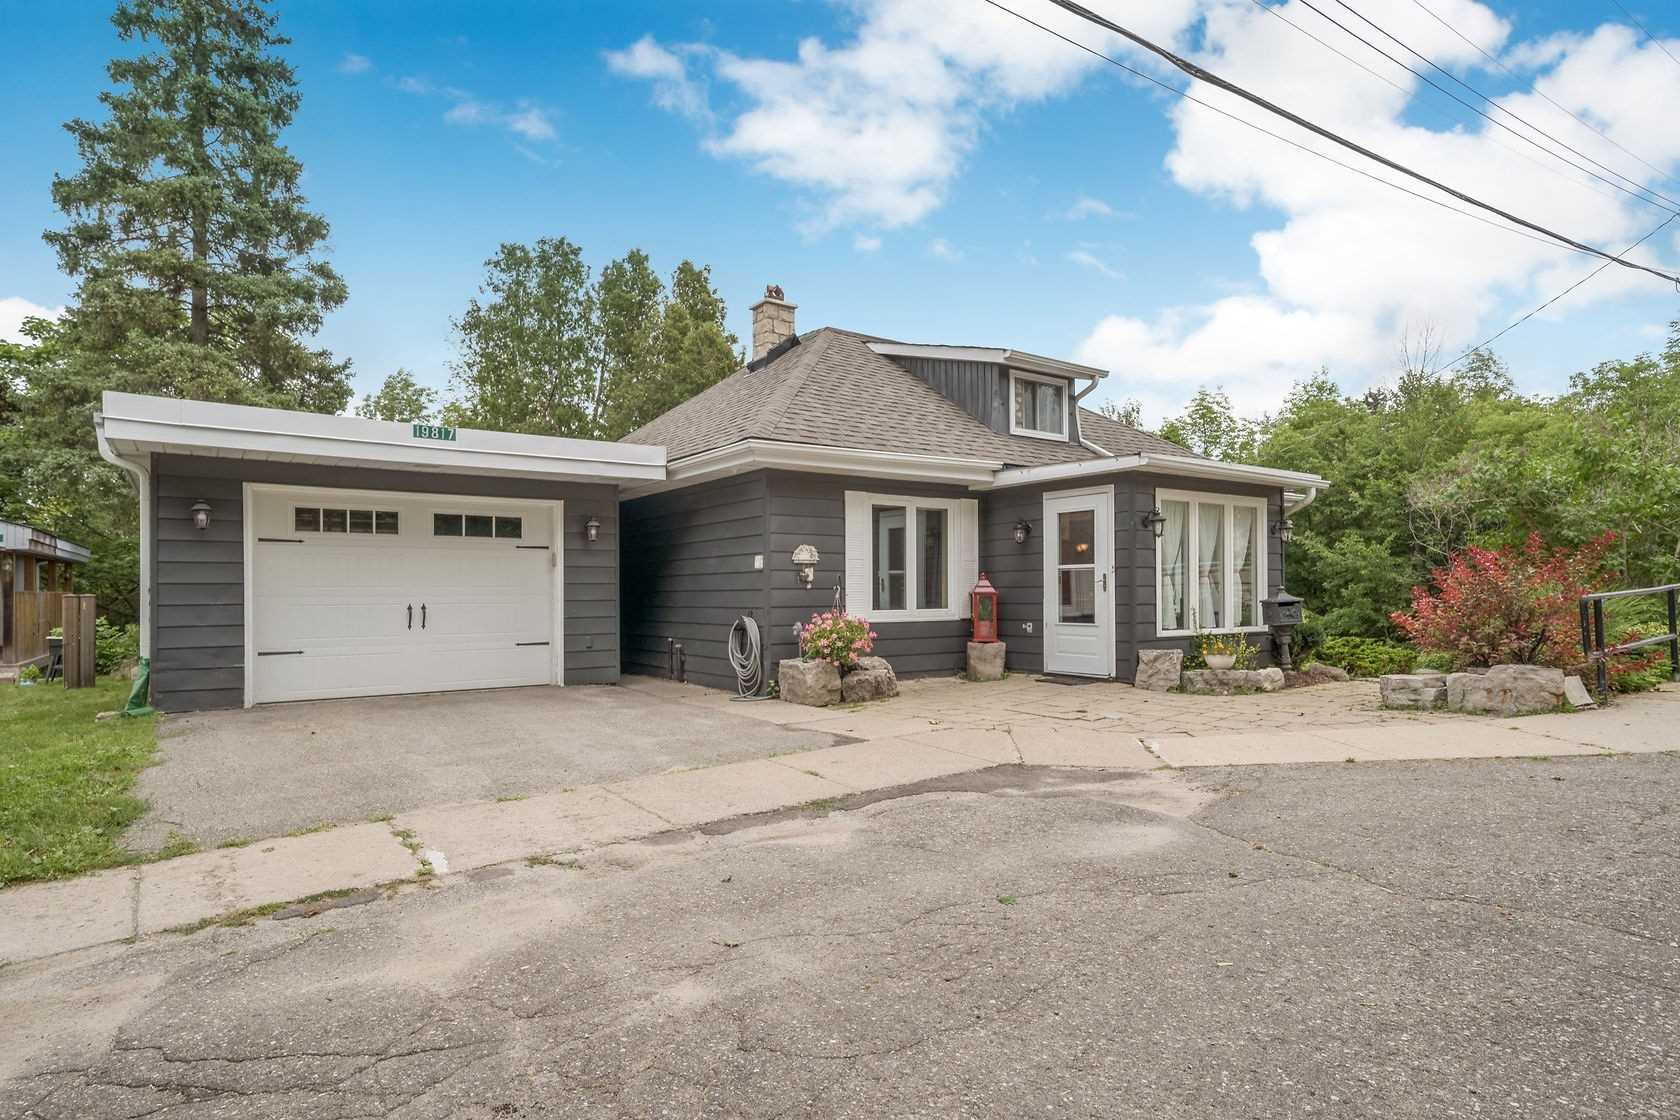 19817 Main St, Caledon, Ontario L7K0C2, 4 Bedrooms Bedrooms, 9 Rooms Rooms,3 BathroomsBathrooms,Detached,For Sale,Main,W4902822